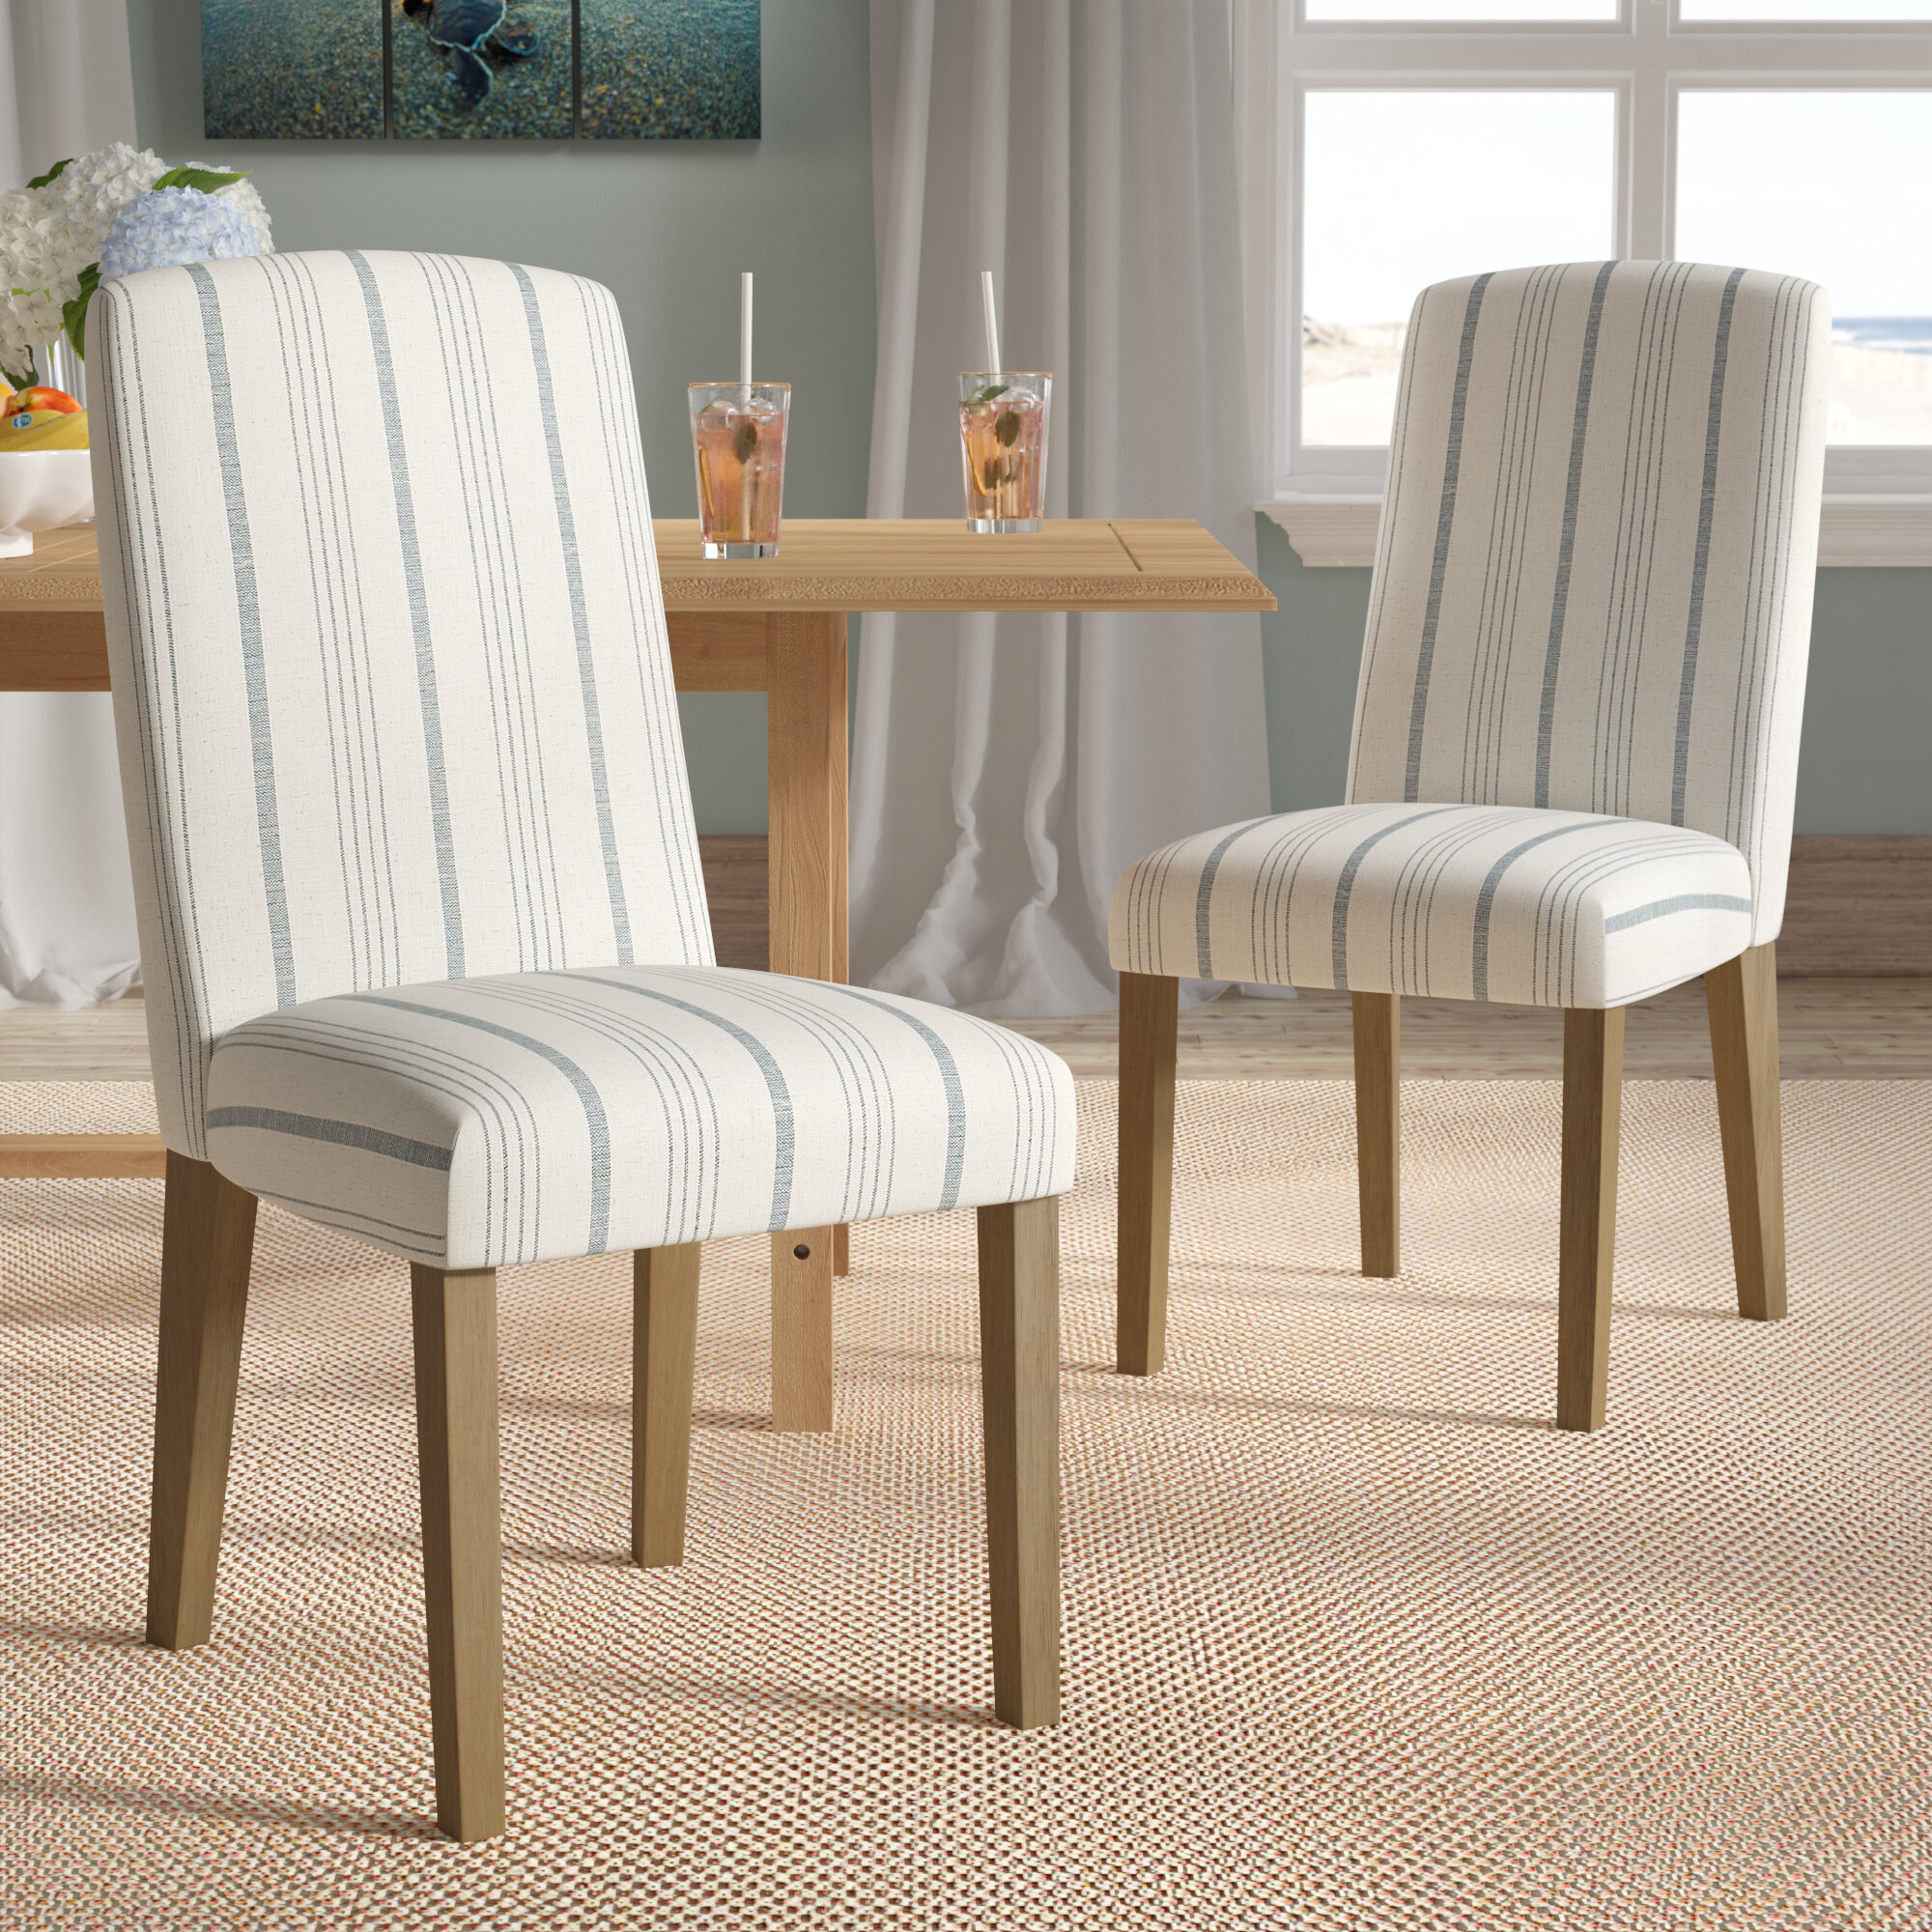 Coastal Parsons Accent Chairs You'Ll Love In 2021 | Wayfair Within Aime Upholstered Parsons Chairs In Beige (View 3 of 15)